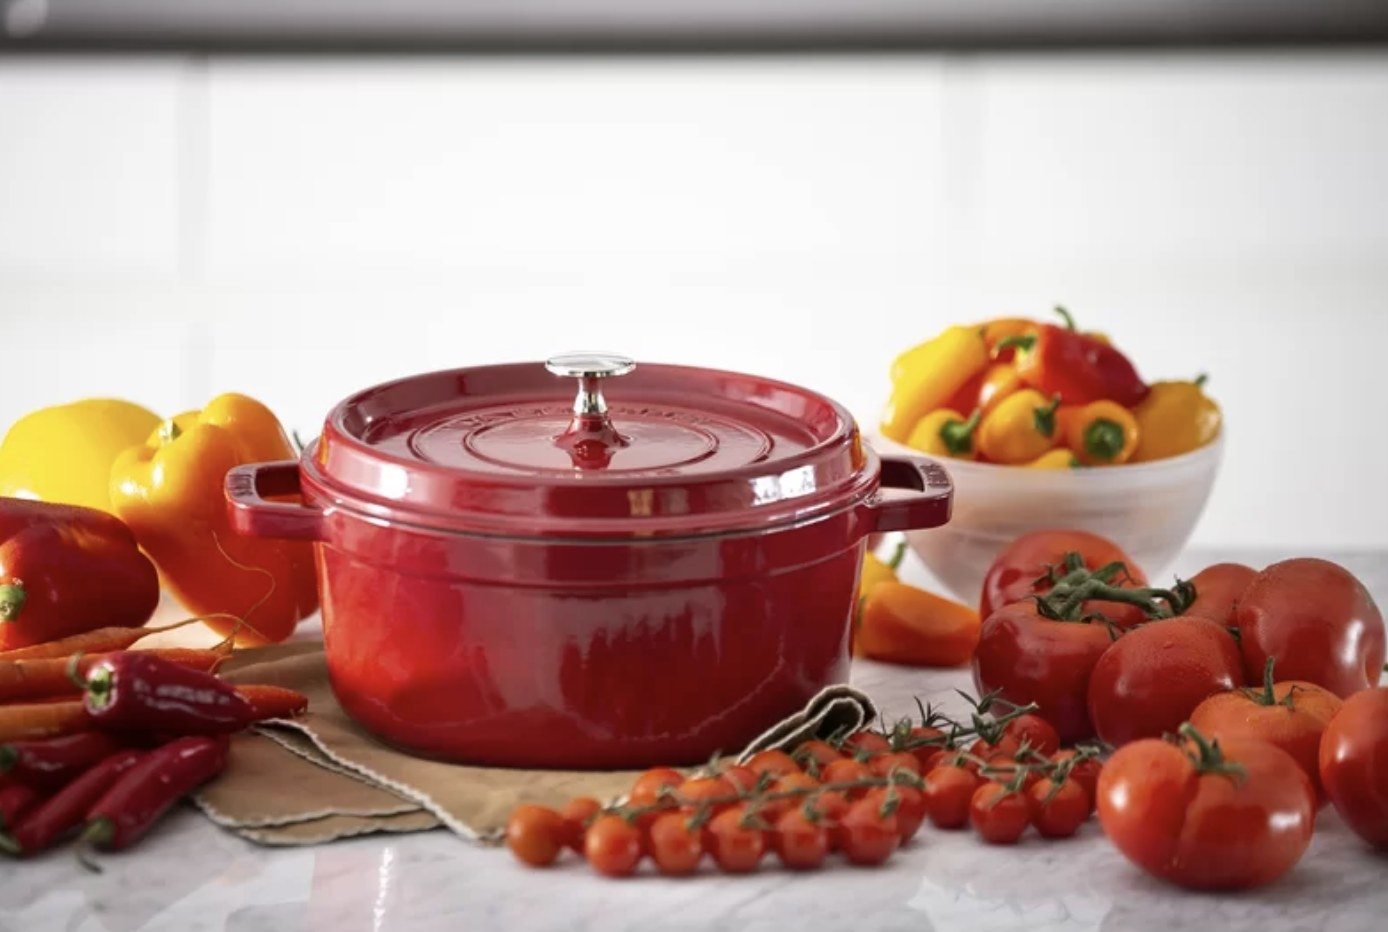 the dutch oven in red surrounded by vegetables